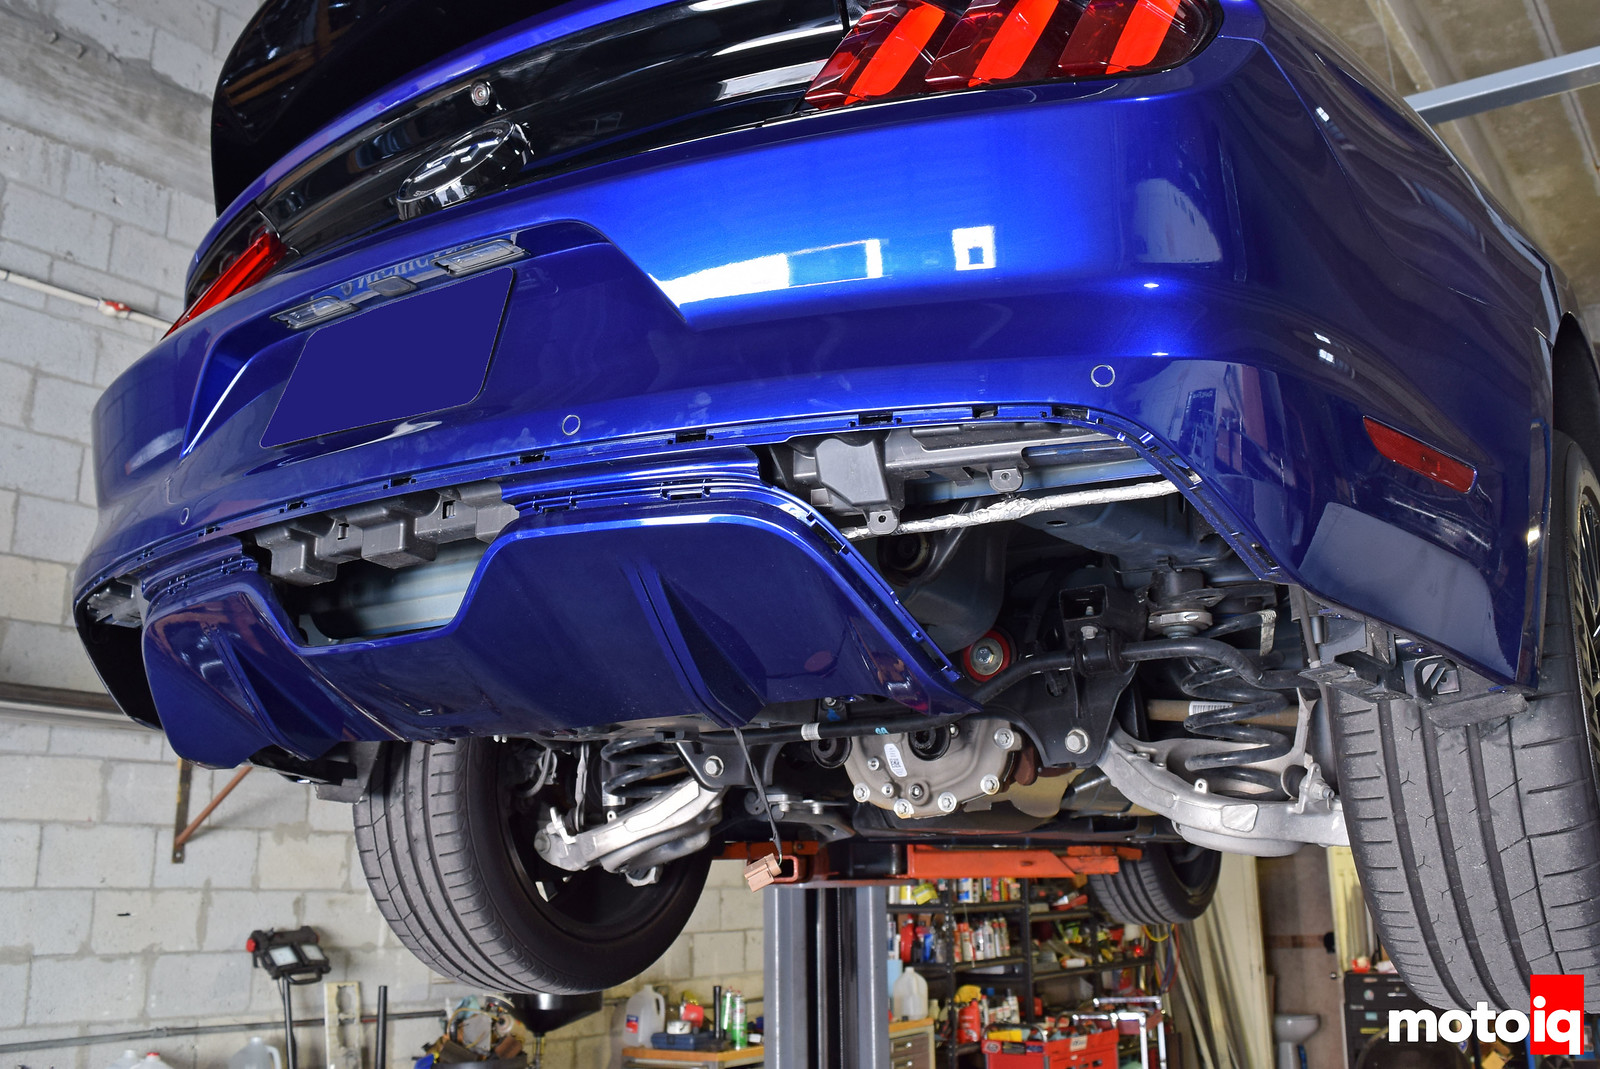 2015 Mustang GT rear valence removed